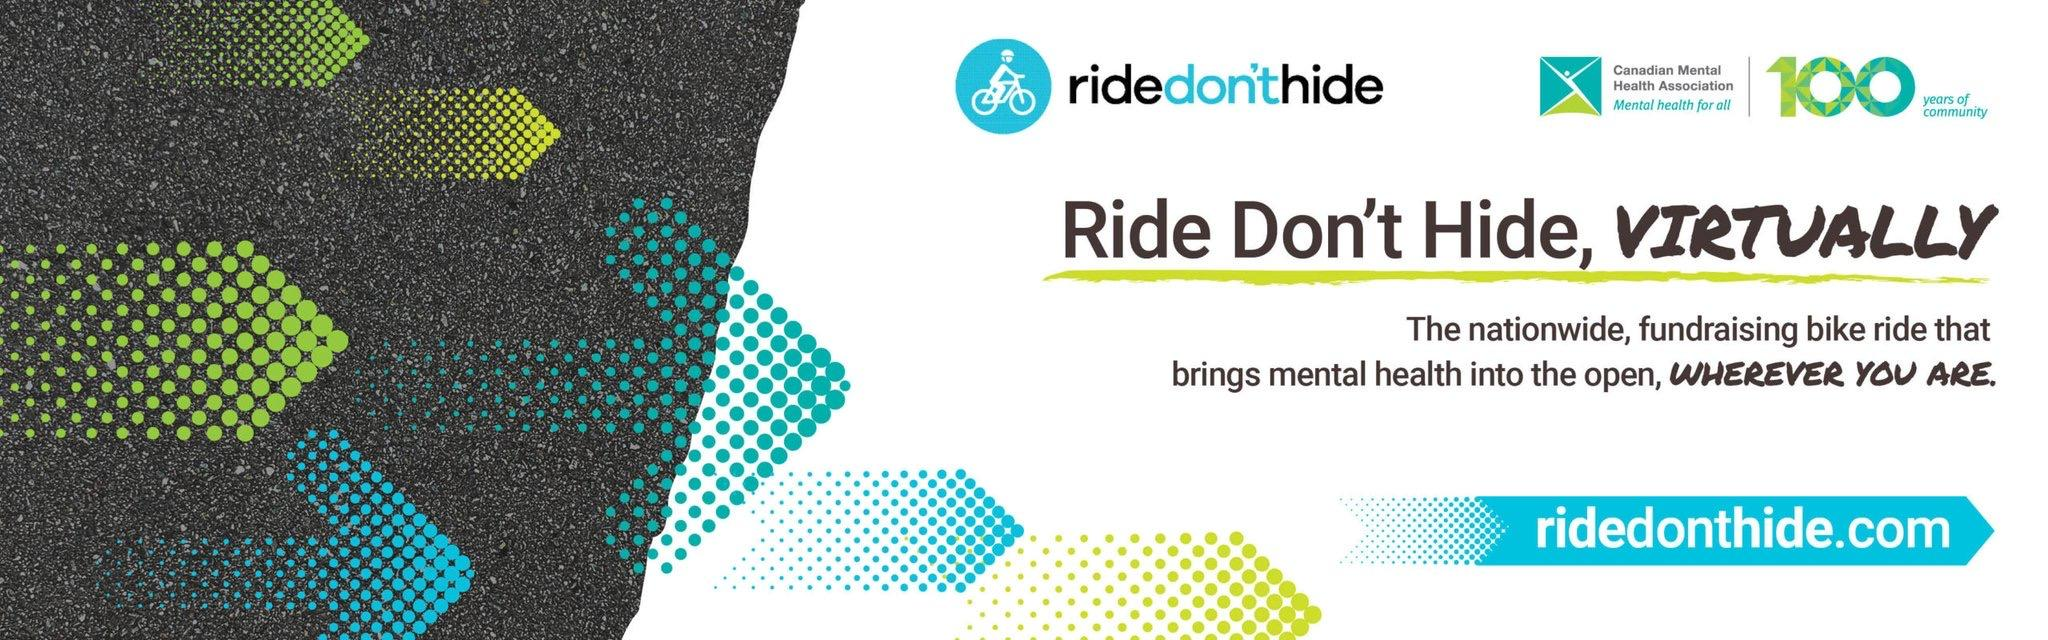 Ride Don't Hide 2020